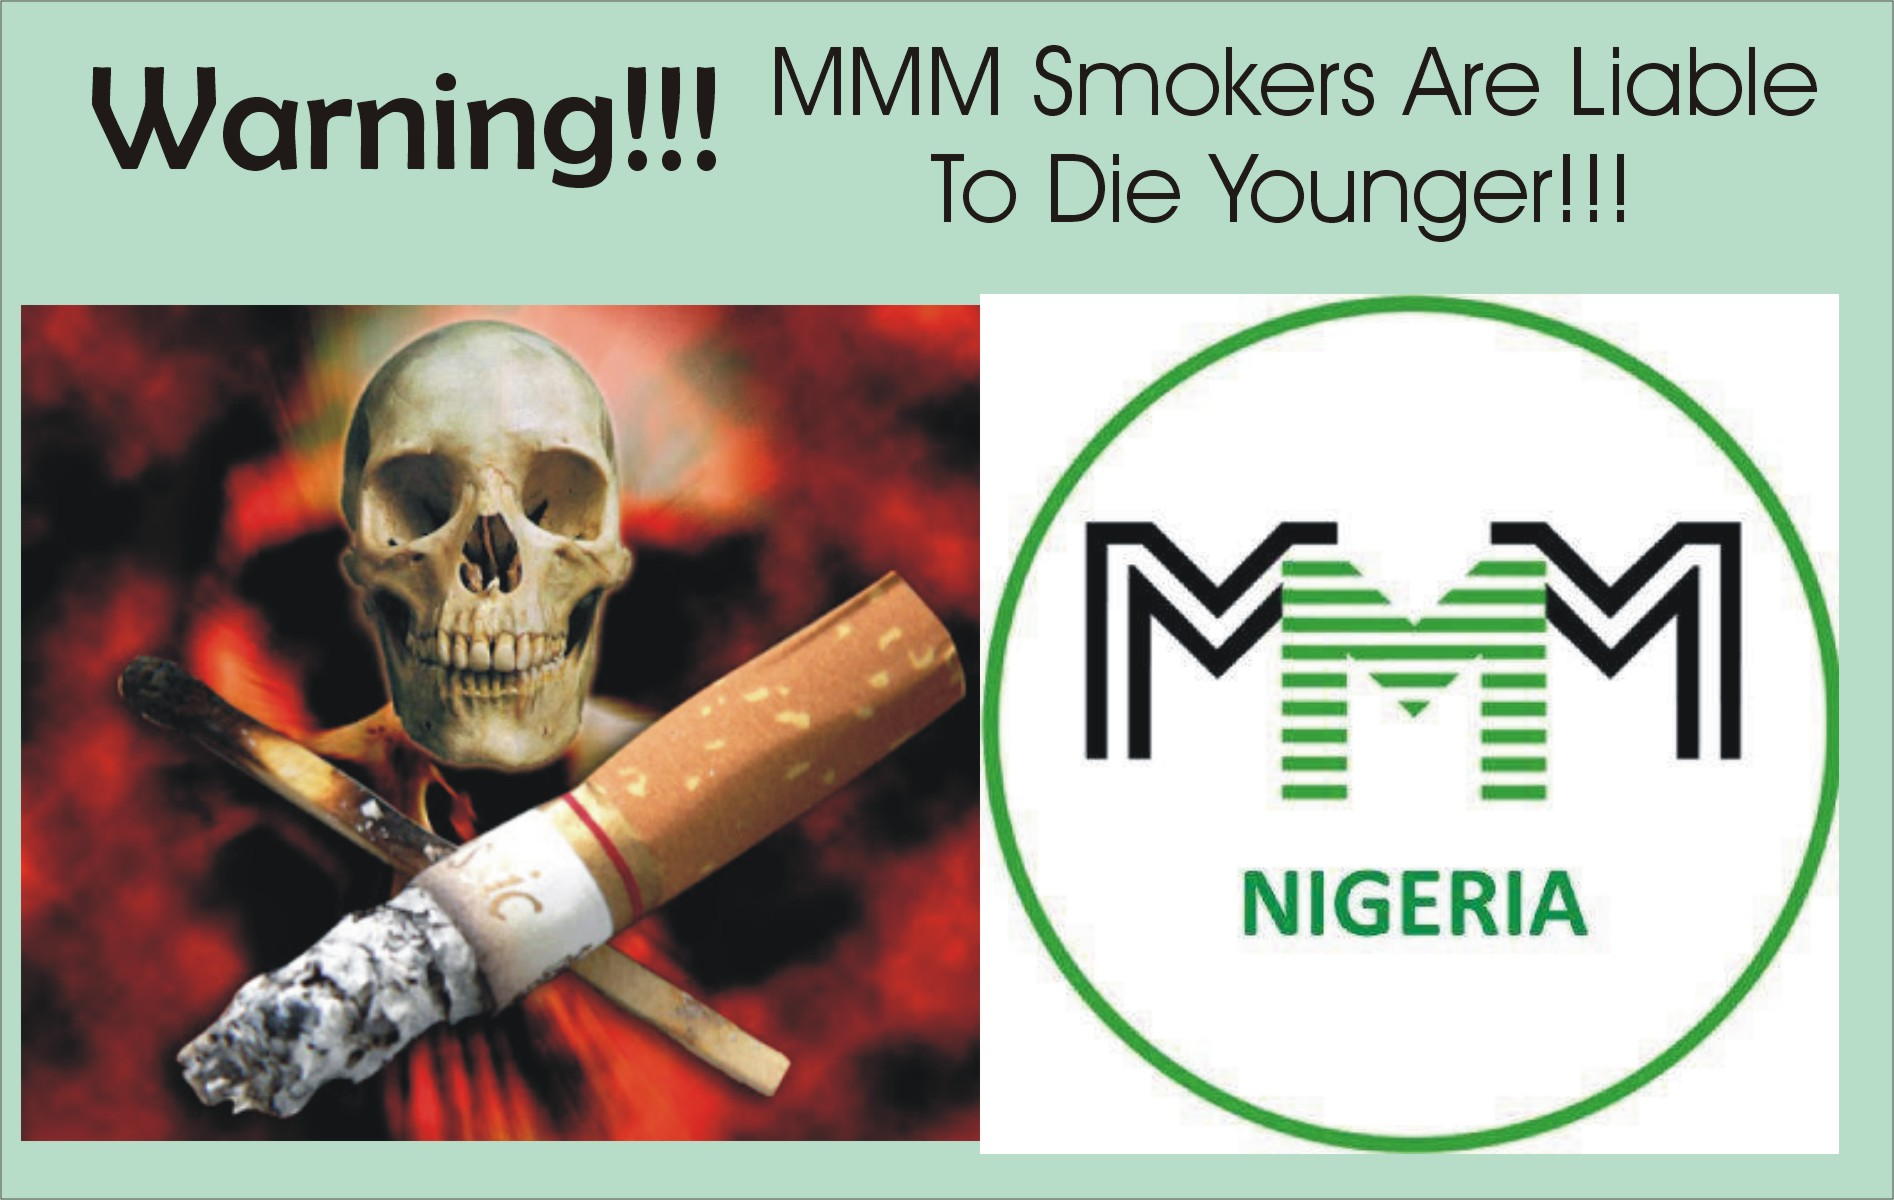 Beware! MMM Global, The Ponzi Scheme Company Is In Nigeria